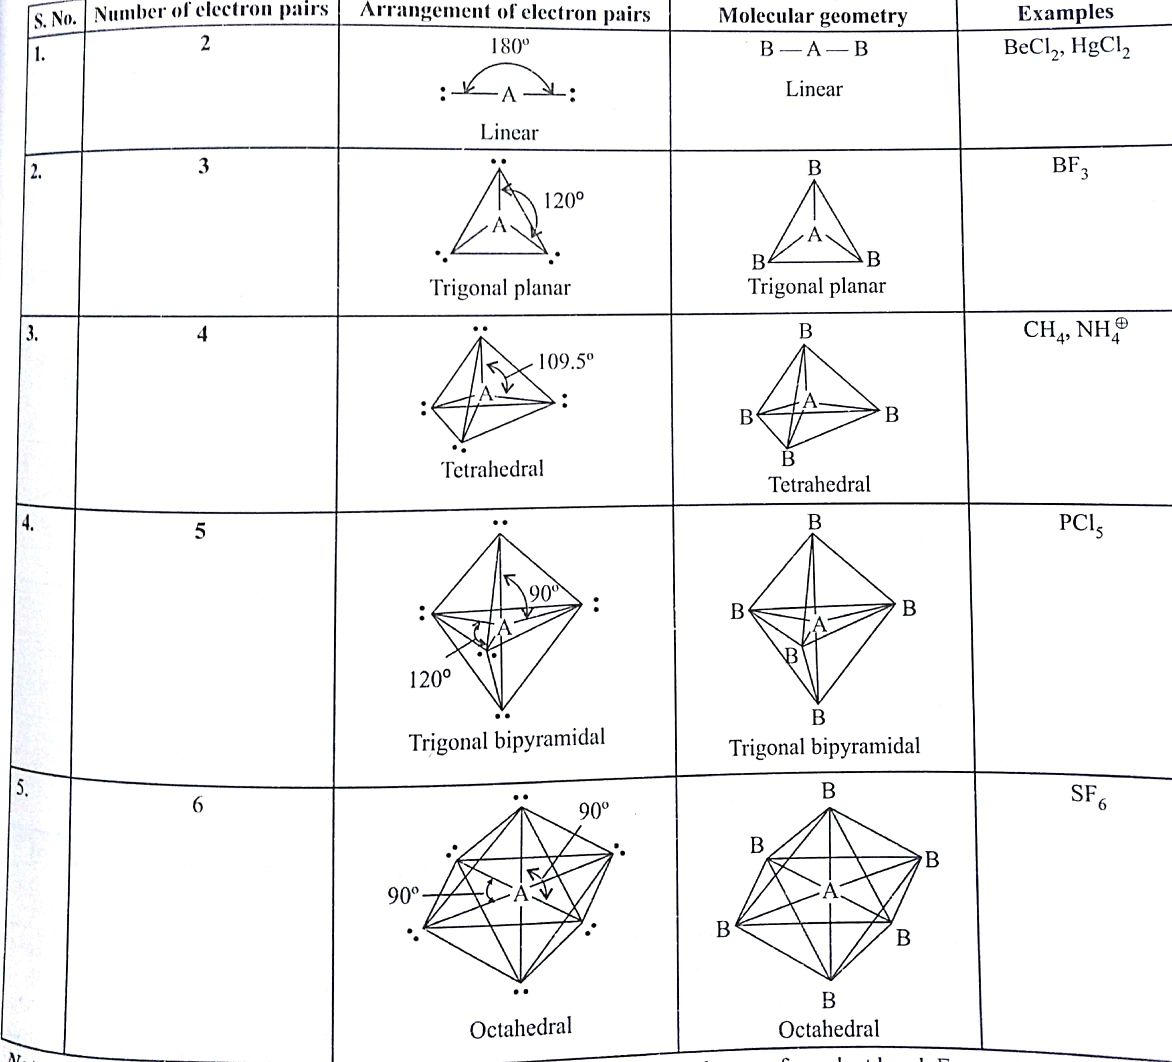 I Have A Doubt Kindly Clarify The Correct Geometry And Hybridization For Xef4 Are